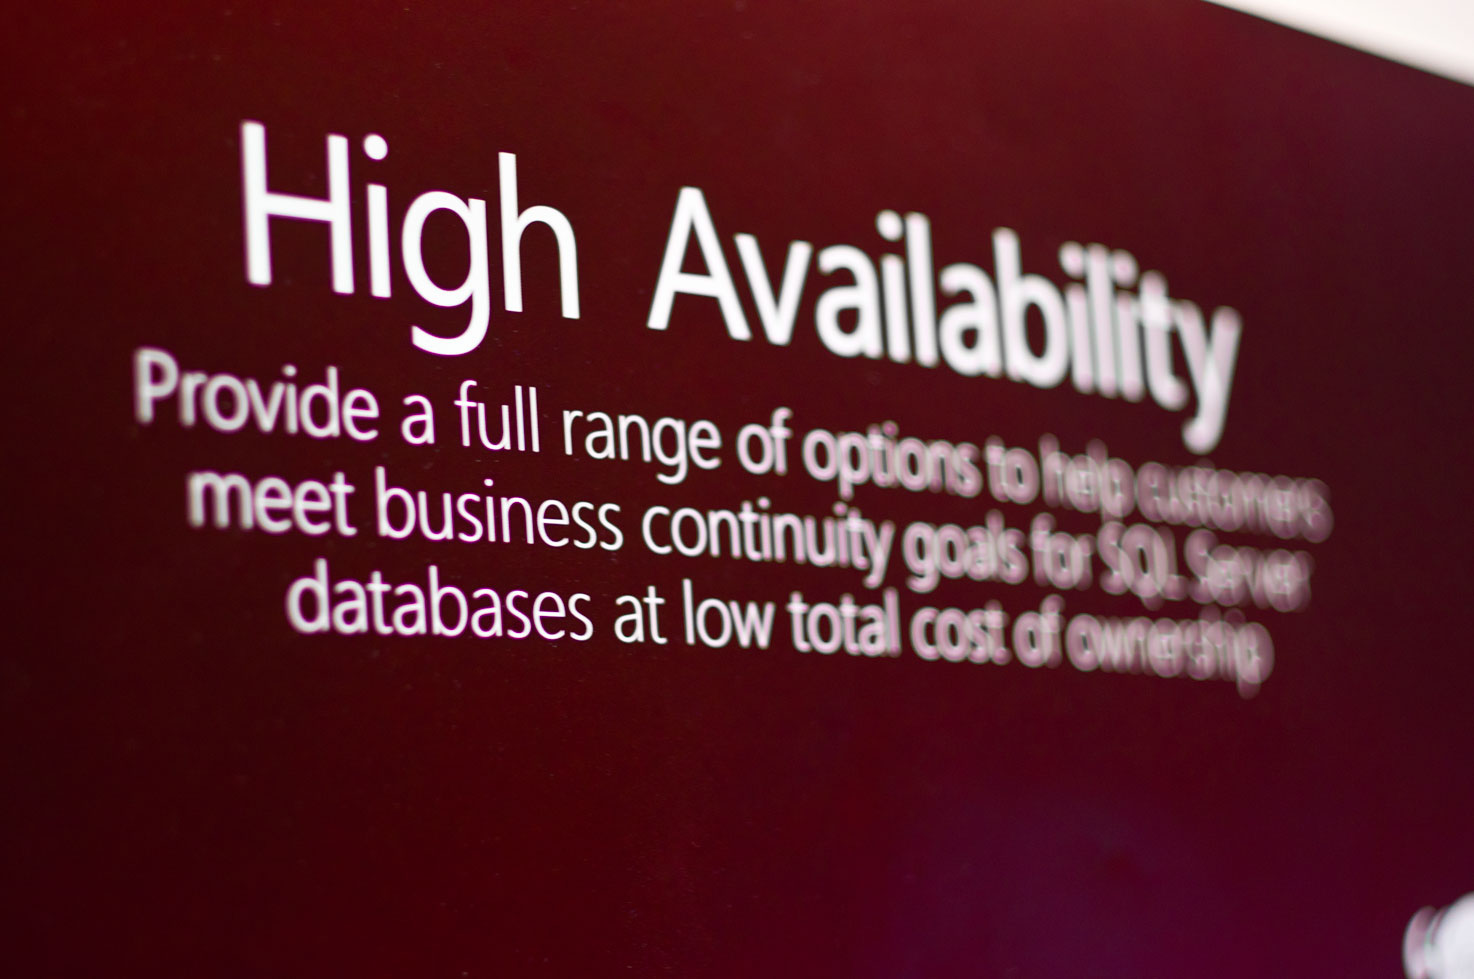 SQL Server High Avalability Poster